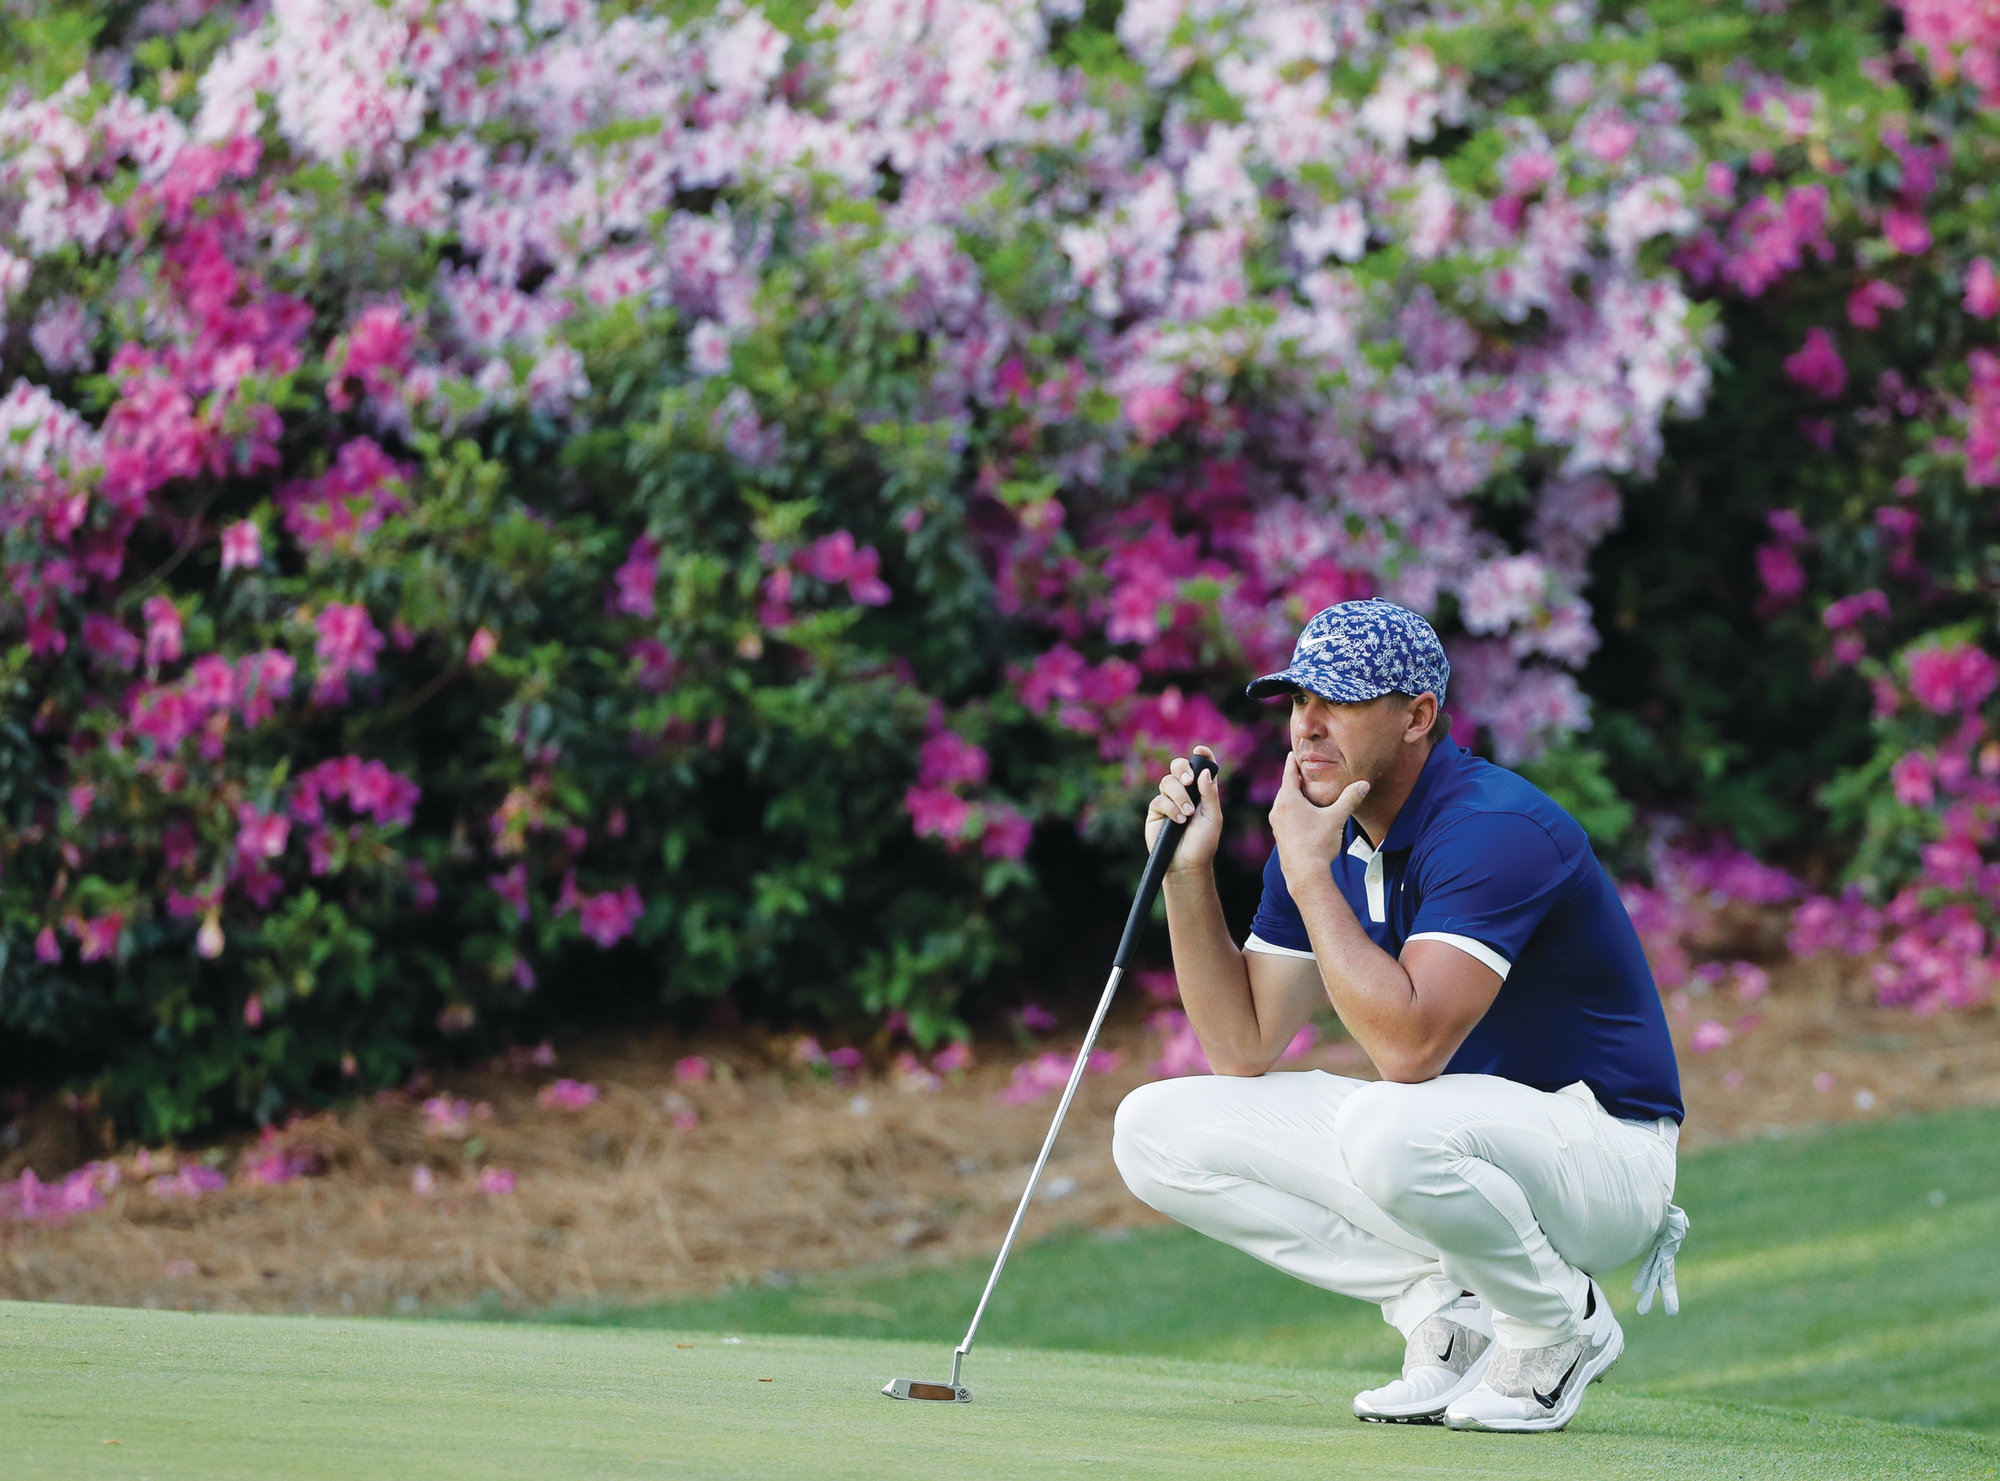 Brooks Koepka looks over a putt on the 13th hole during the first round for the Masters golf tournament Thursday in Augusta, Georgia. Koepka moved into the lead with a series of birdies on the back nine that left him 5 under par, ahead of several players tied for second place at 4-under.